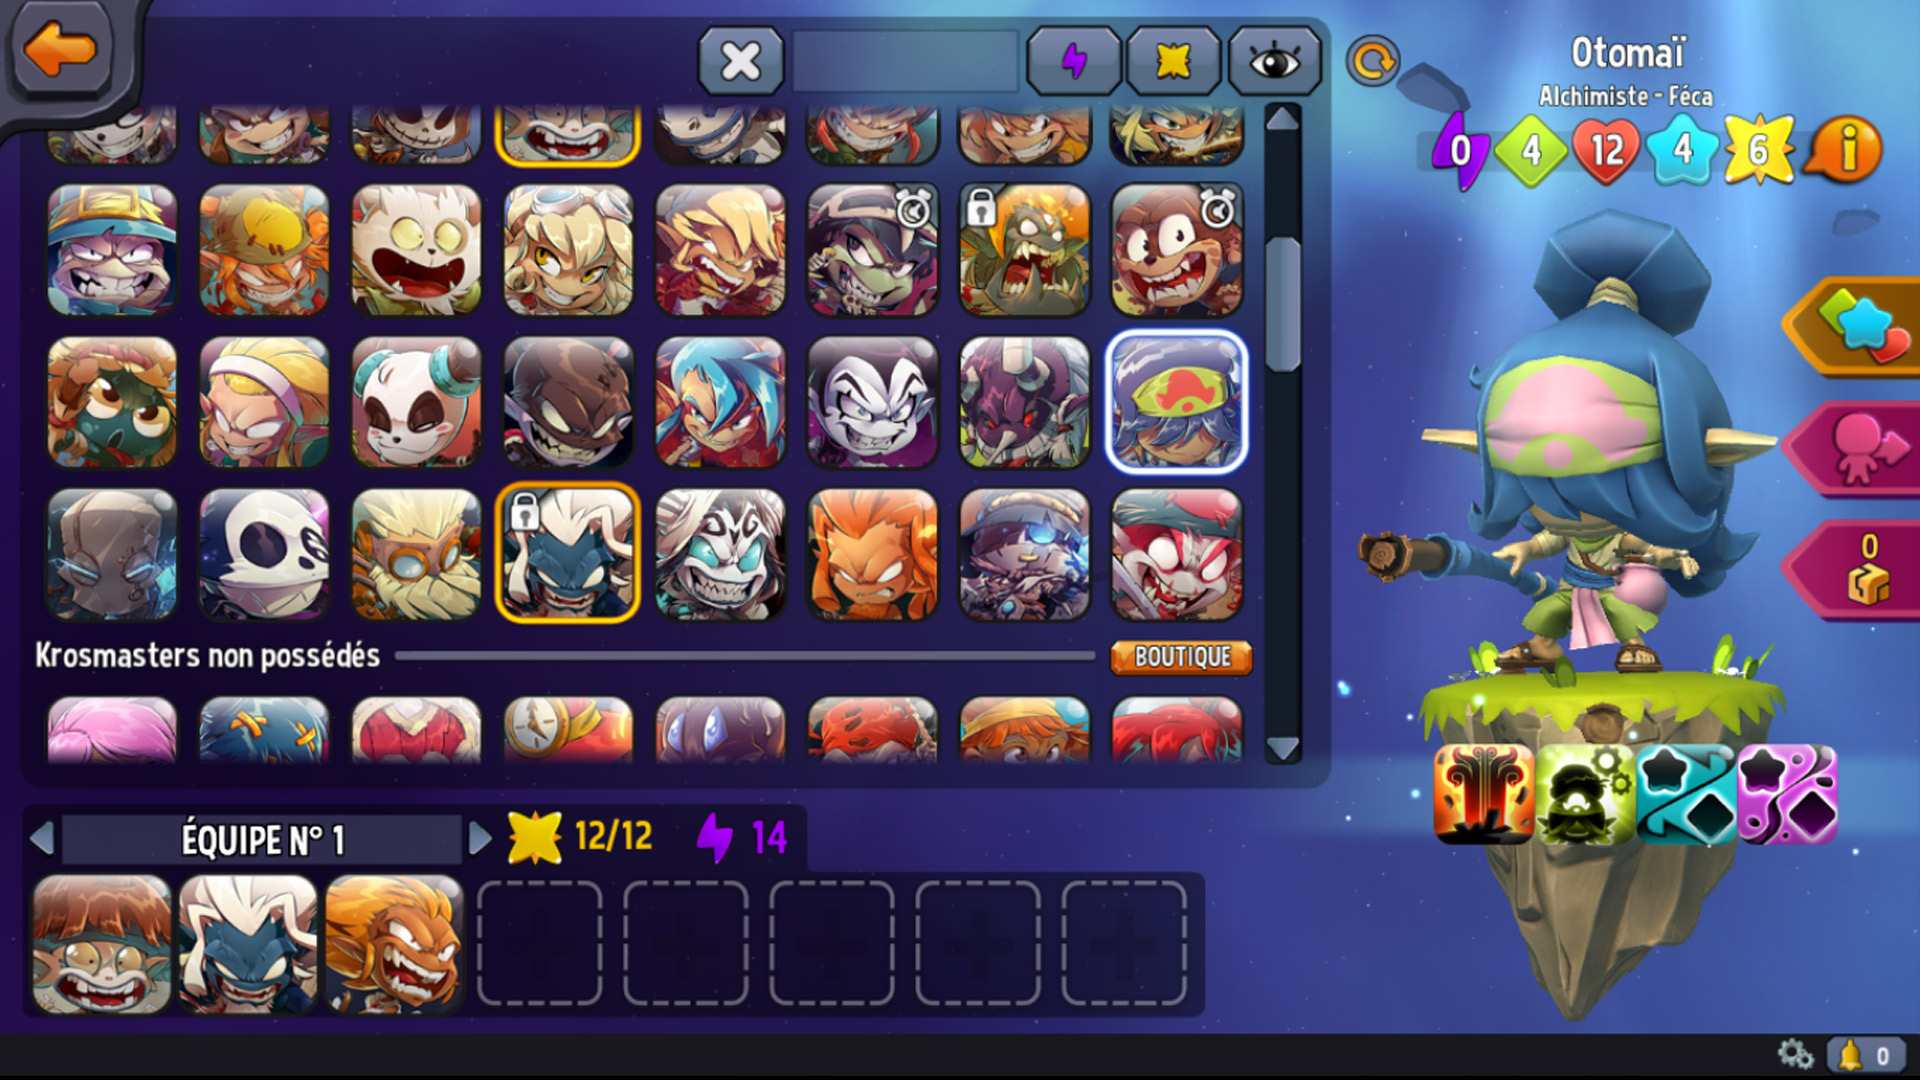 Krosmaster - Ogrest Pack screenshot